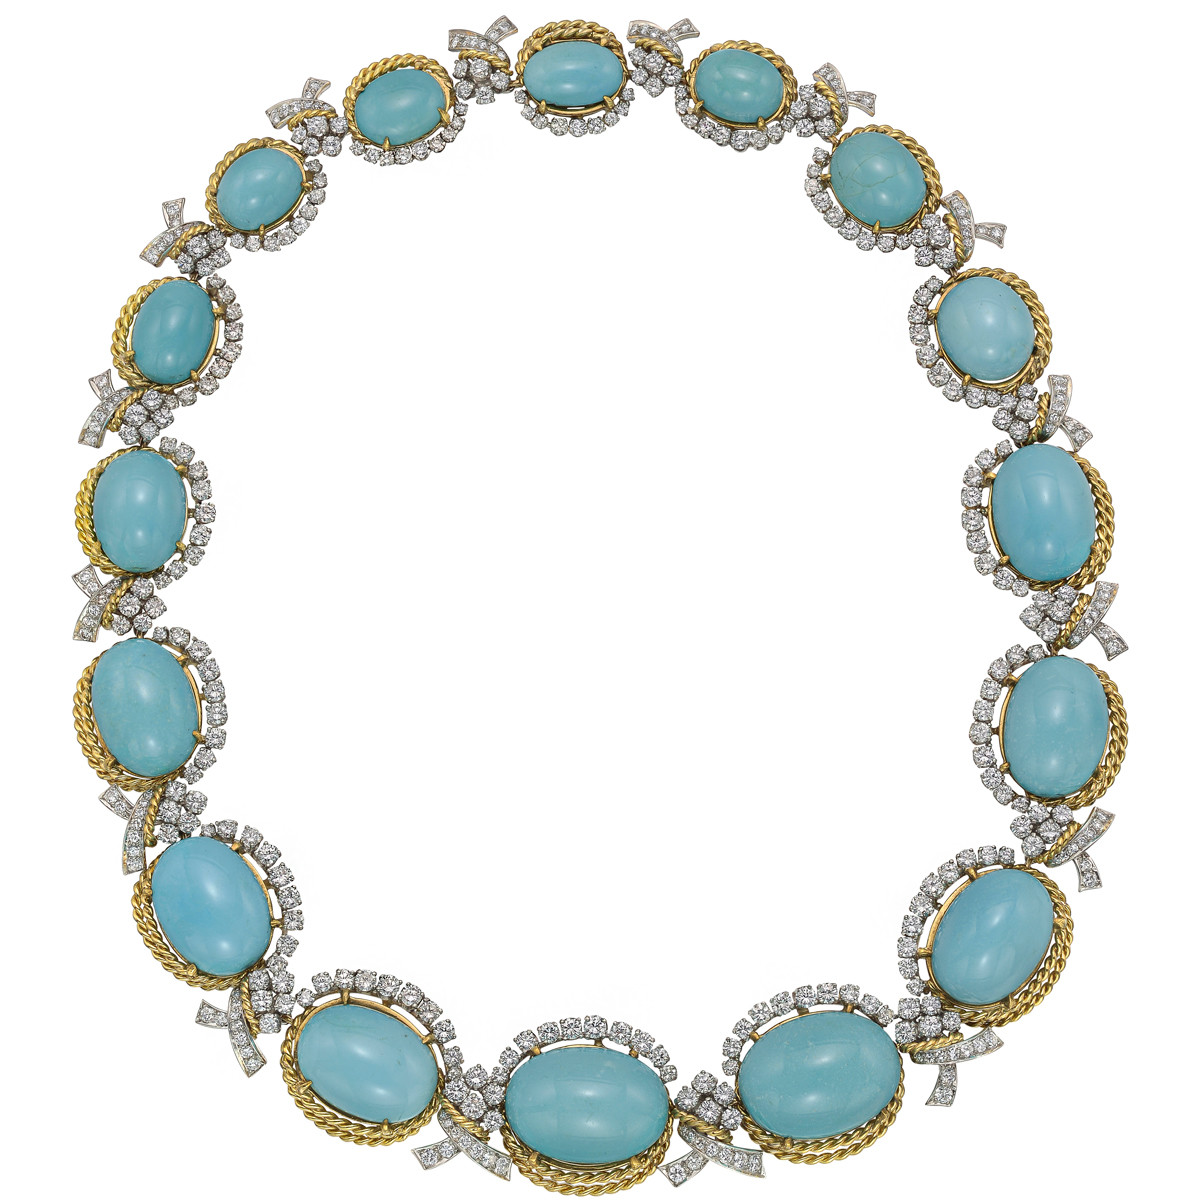 Vintage Turquoise & Diamond Link Necklace